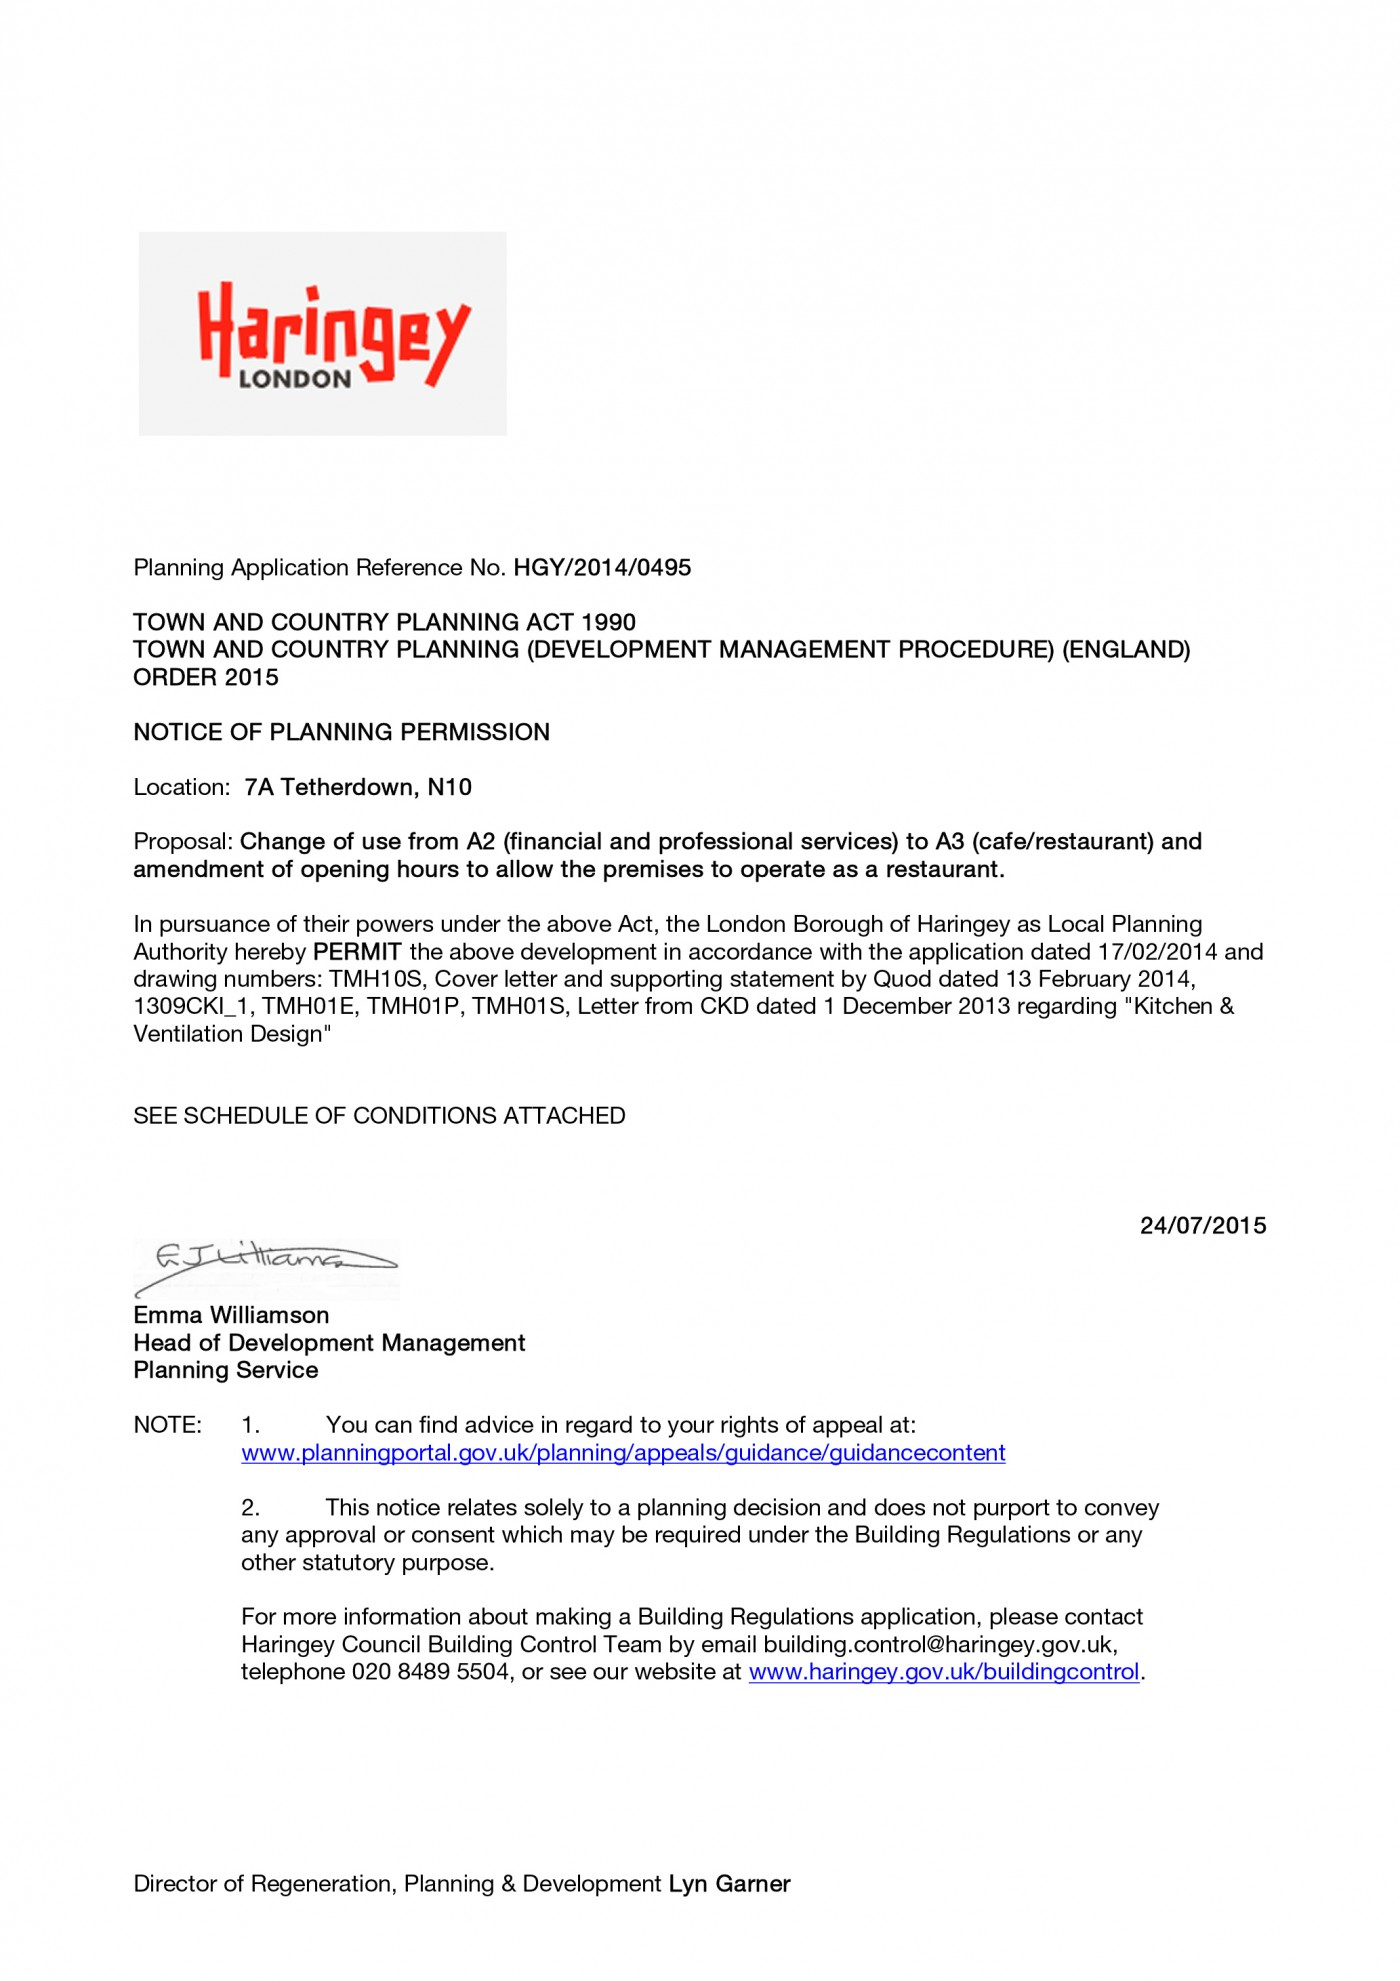 decision notice - Change of use from A2 to A3 Restaurant